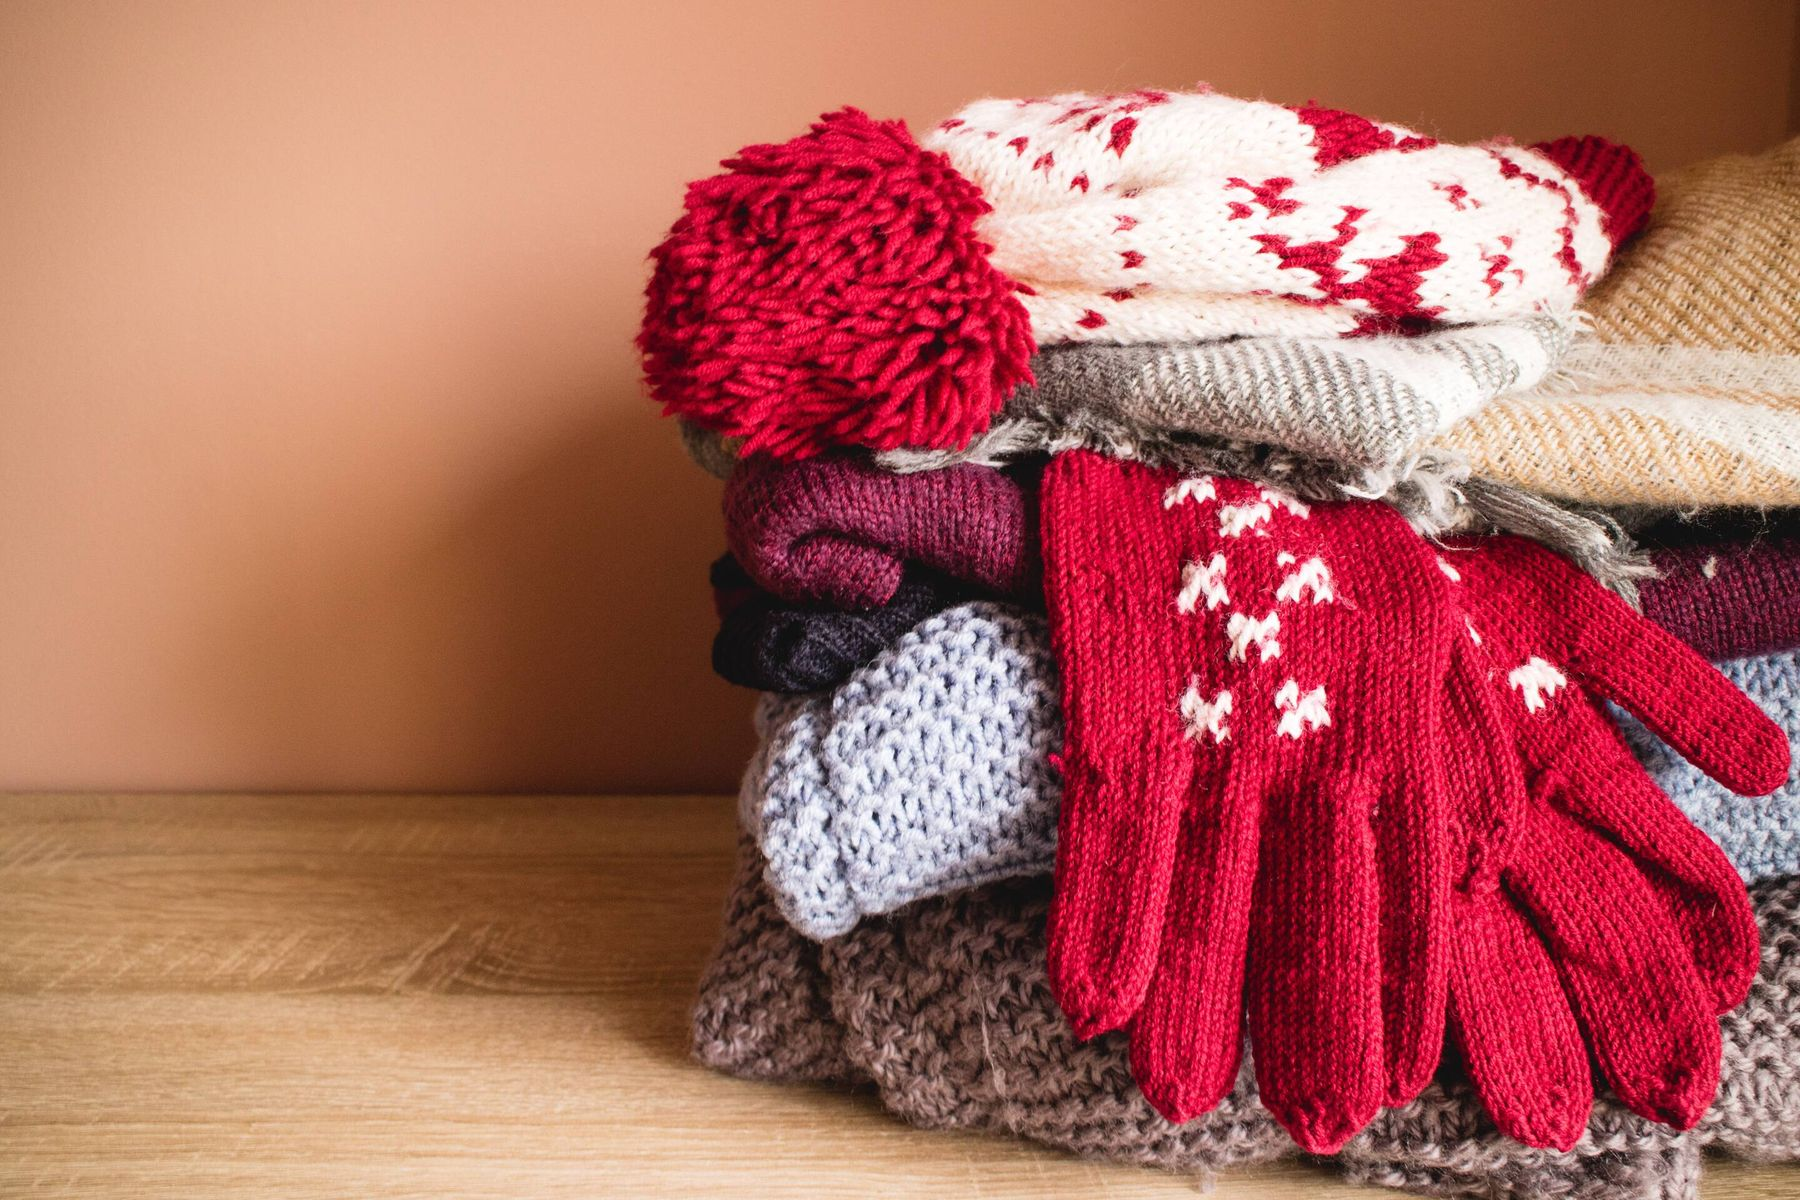 Simple Tips to Keep Your Favourite Woollens Soft Forever!